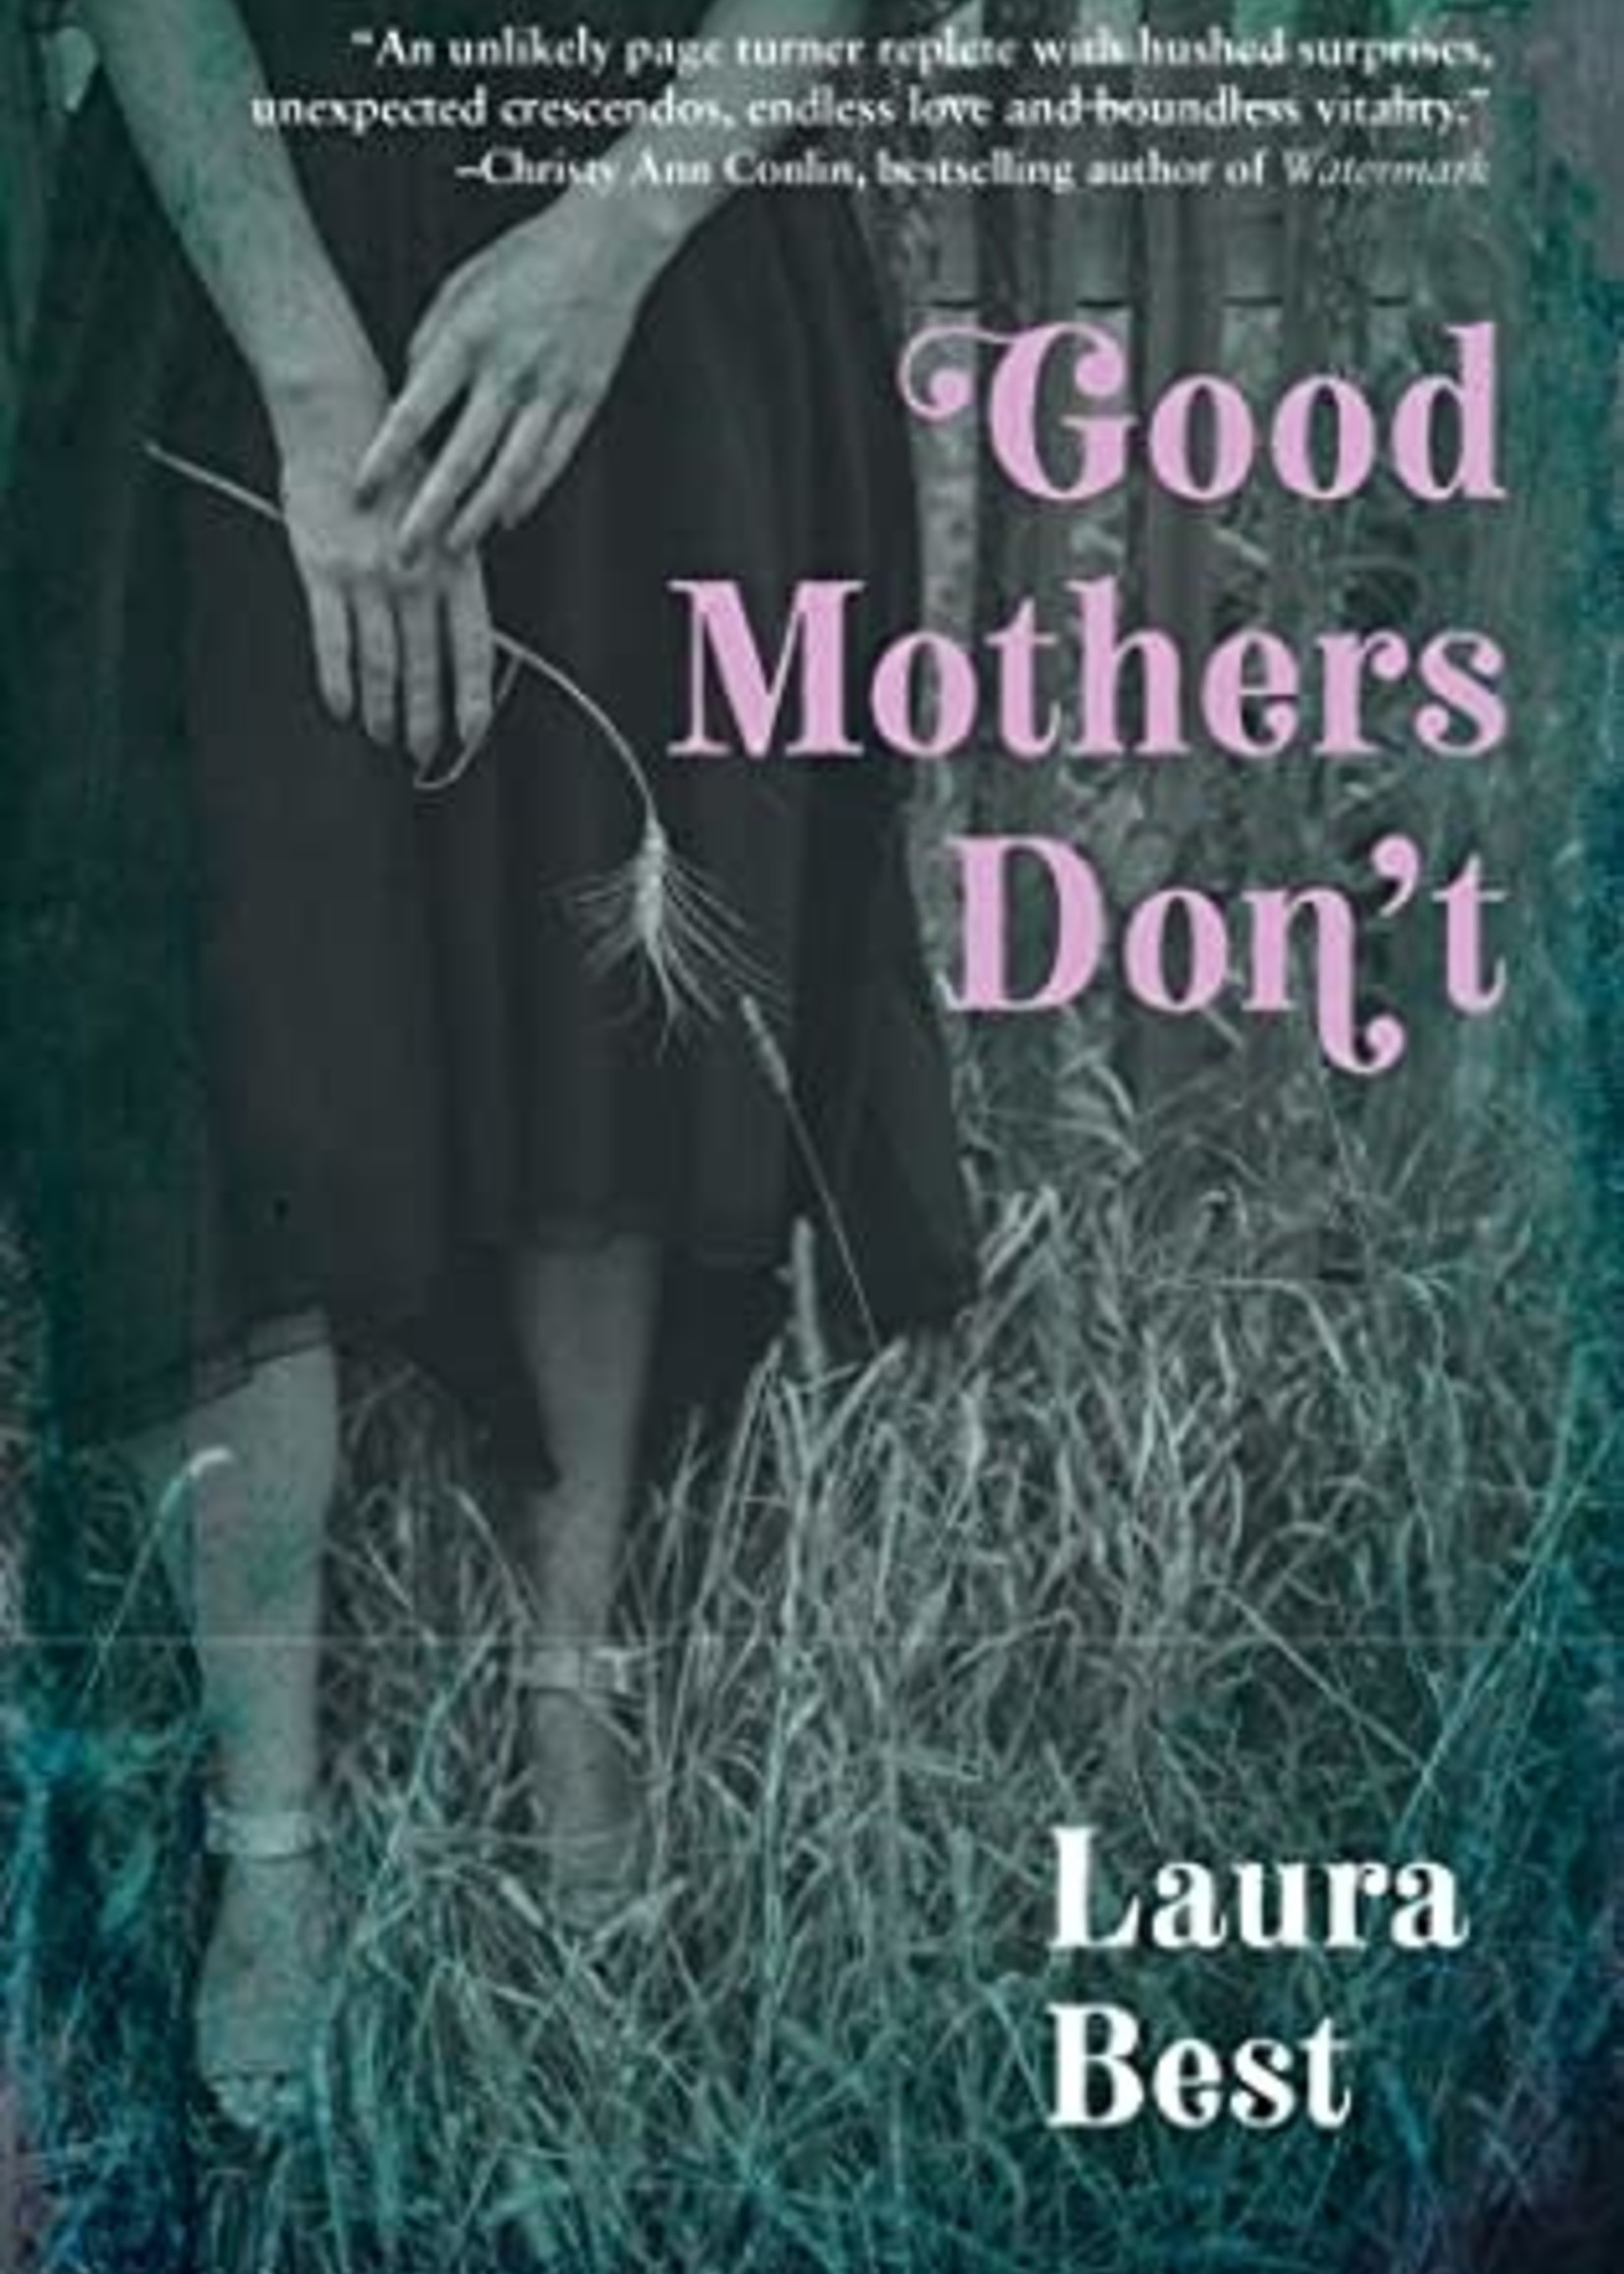 USED - Good Mothers Don't by Laura Best